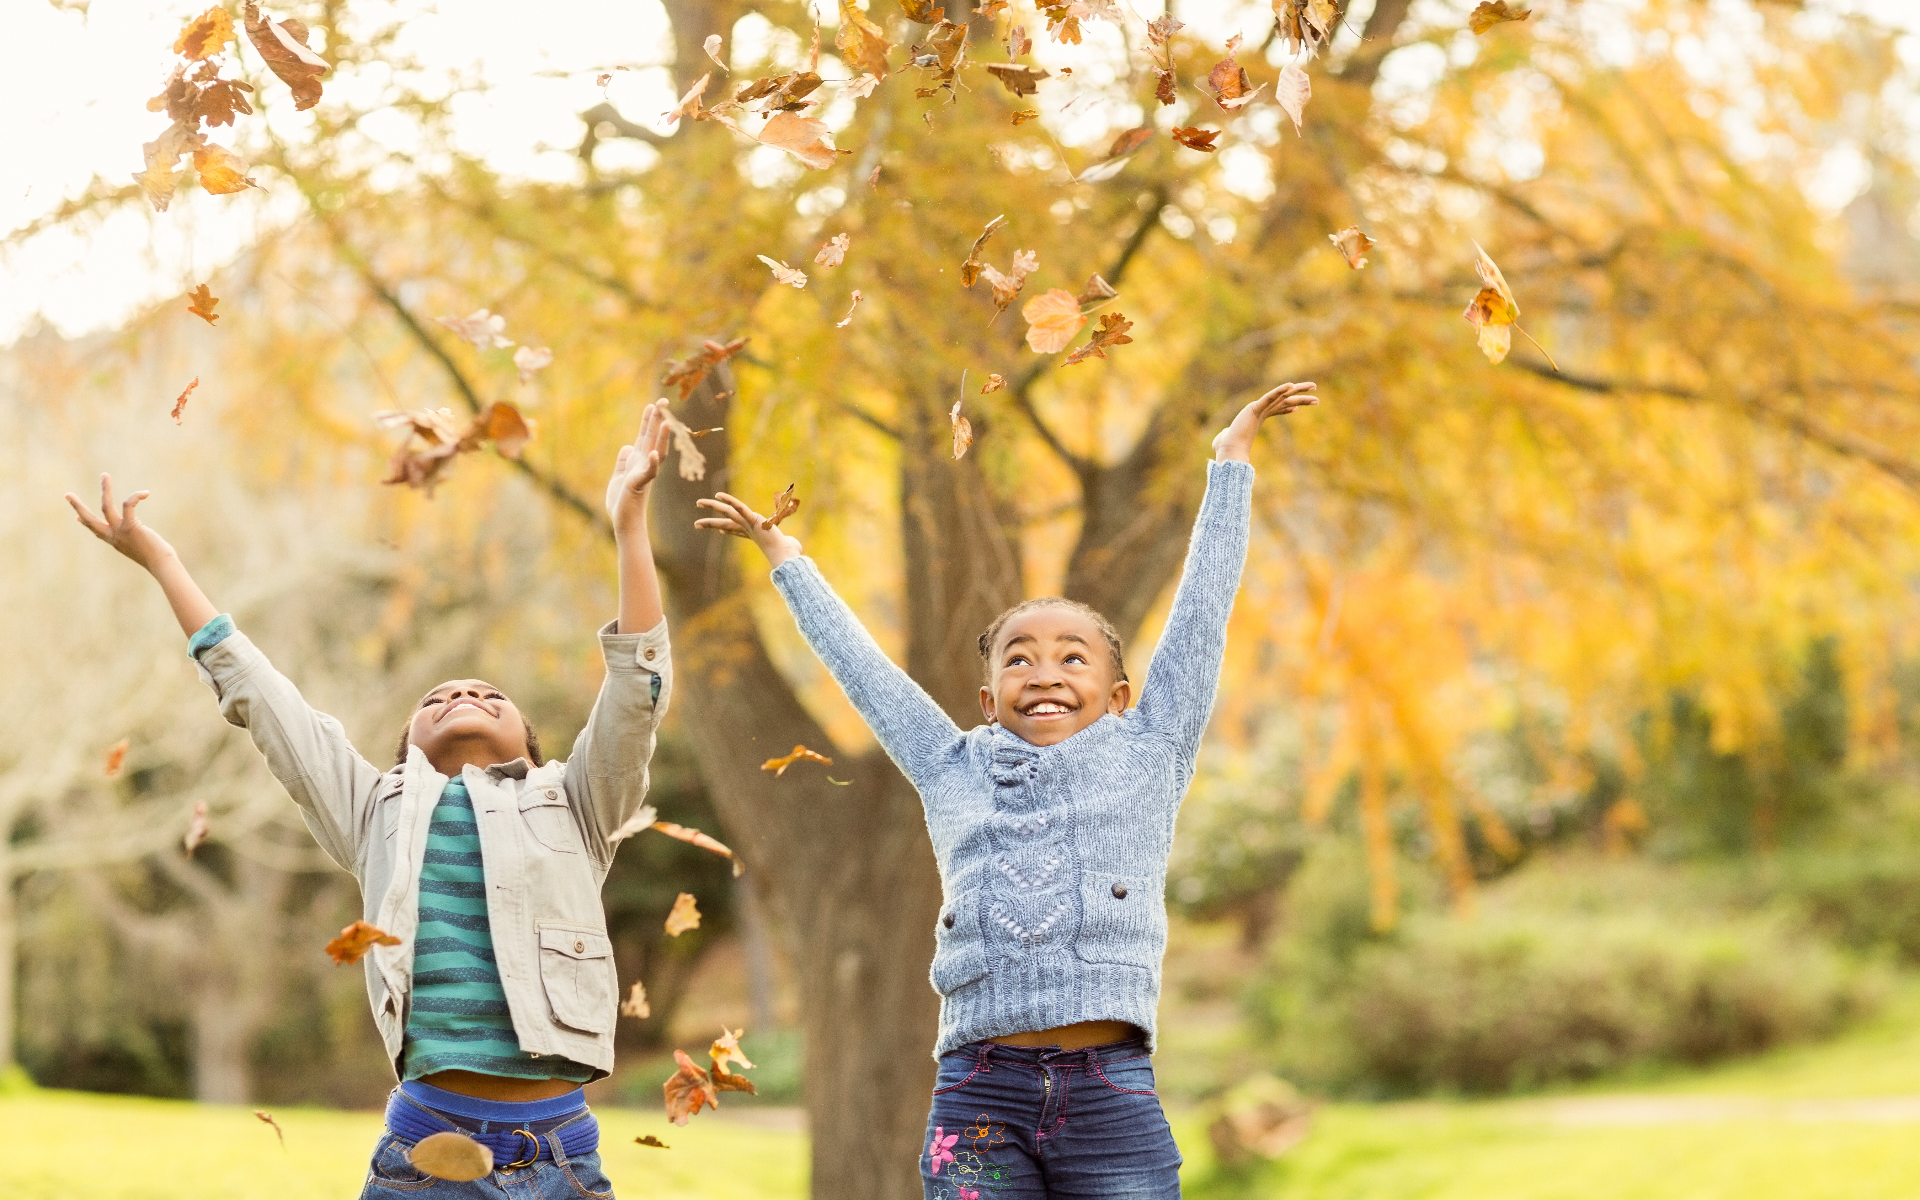 Two young girls playing in autumn leaves and smiling